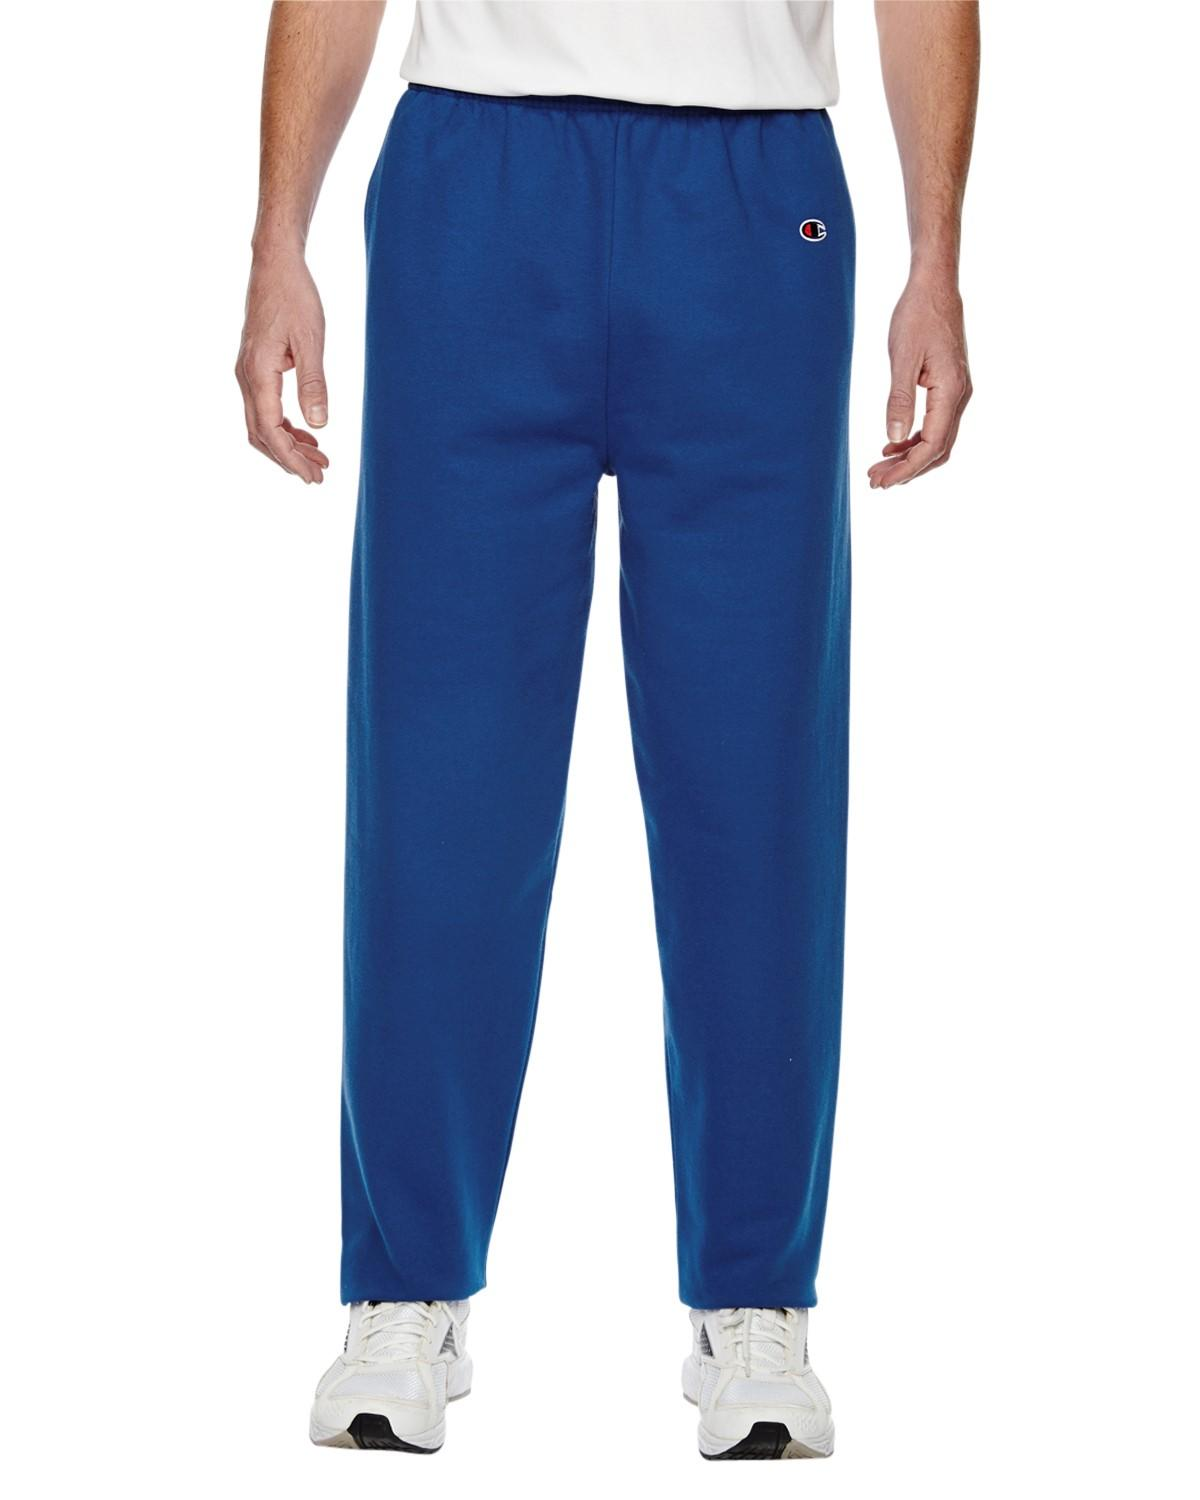 e4dc85b8ca24 Lyst - Champion Cotton Max Fleece Pant in Blue for Men